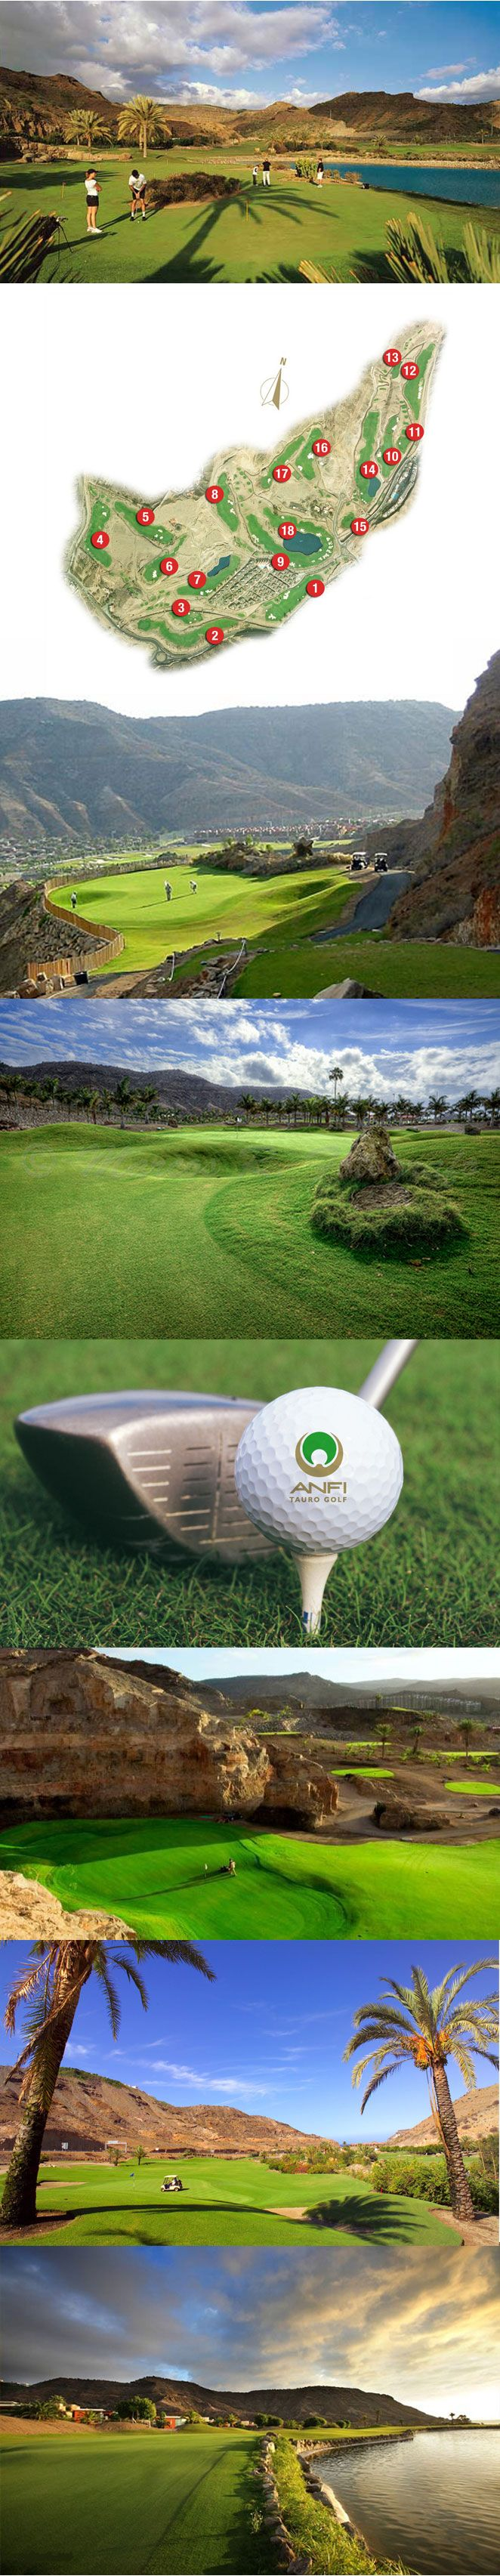 Anfi Tauro Golf, Gran Canaria. Another beautiful golf course!